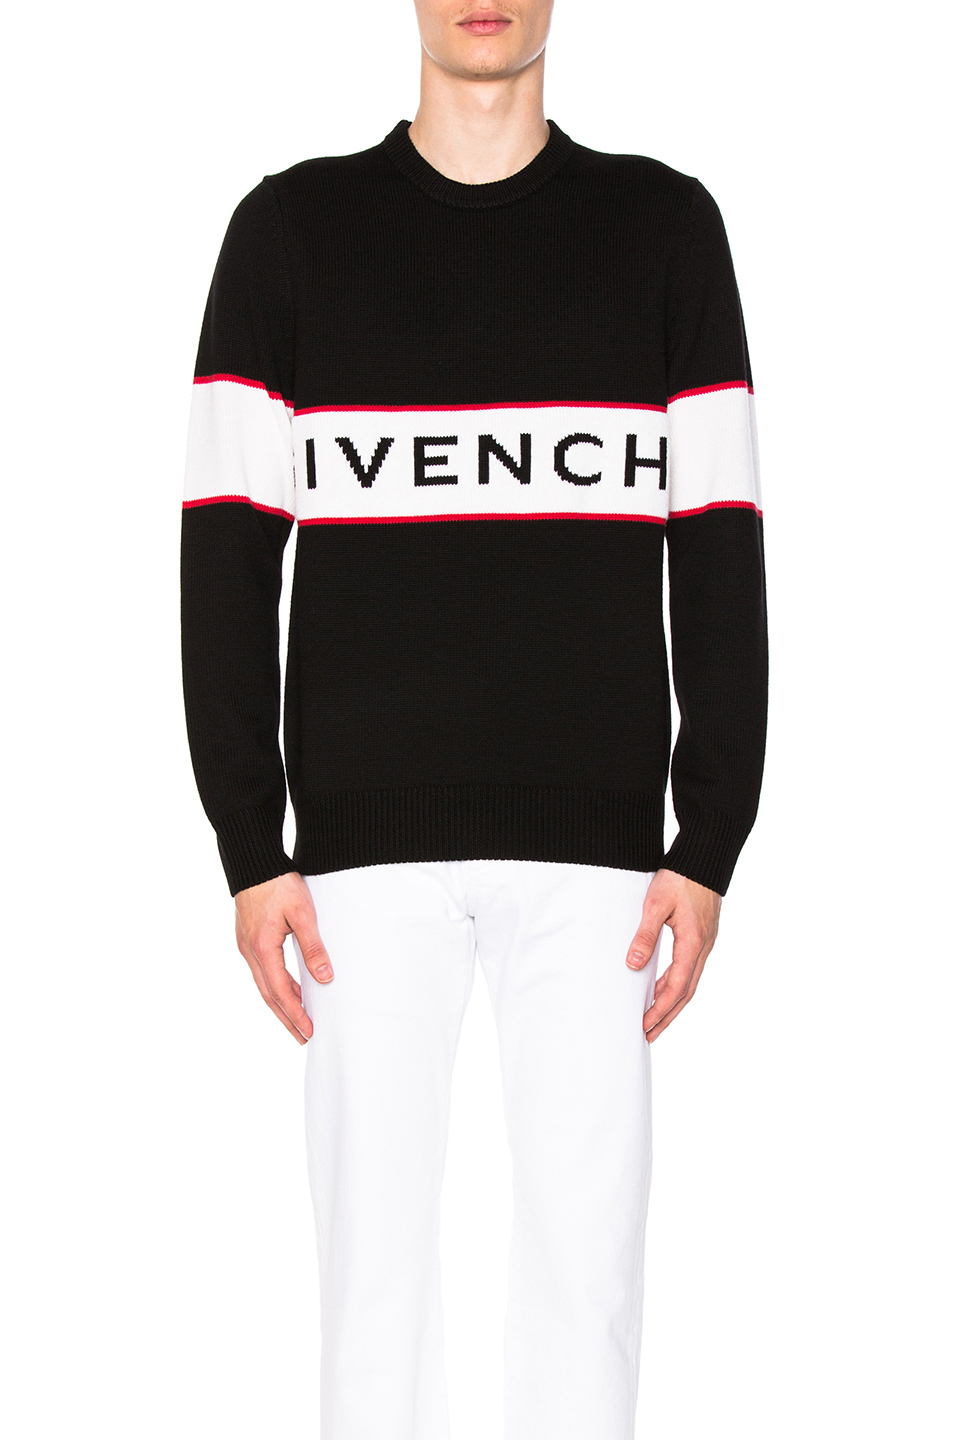 Givenchy Logo Knit Sweater in Black